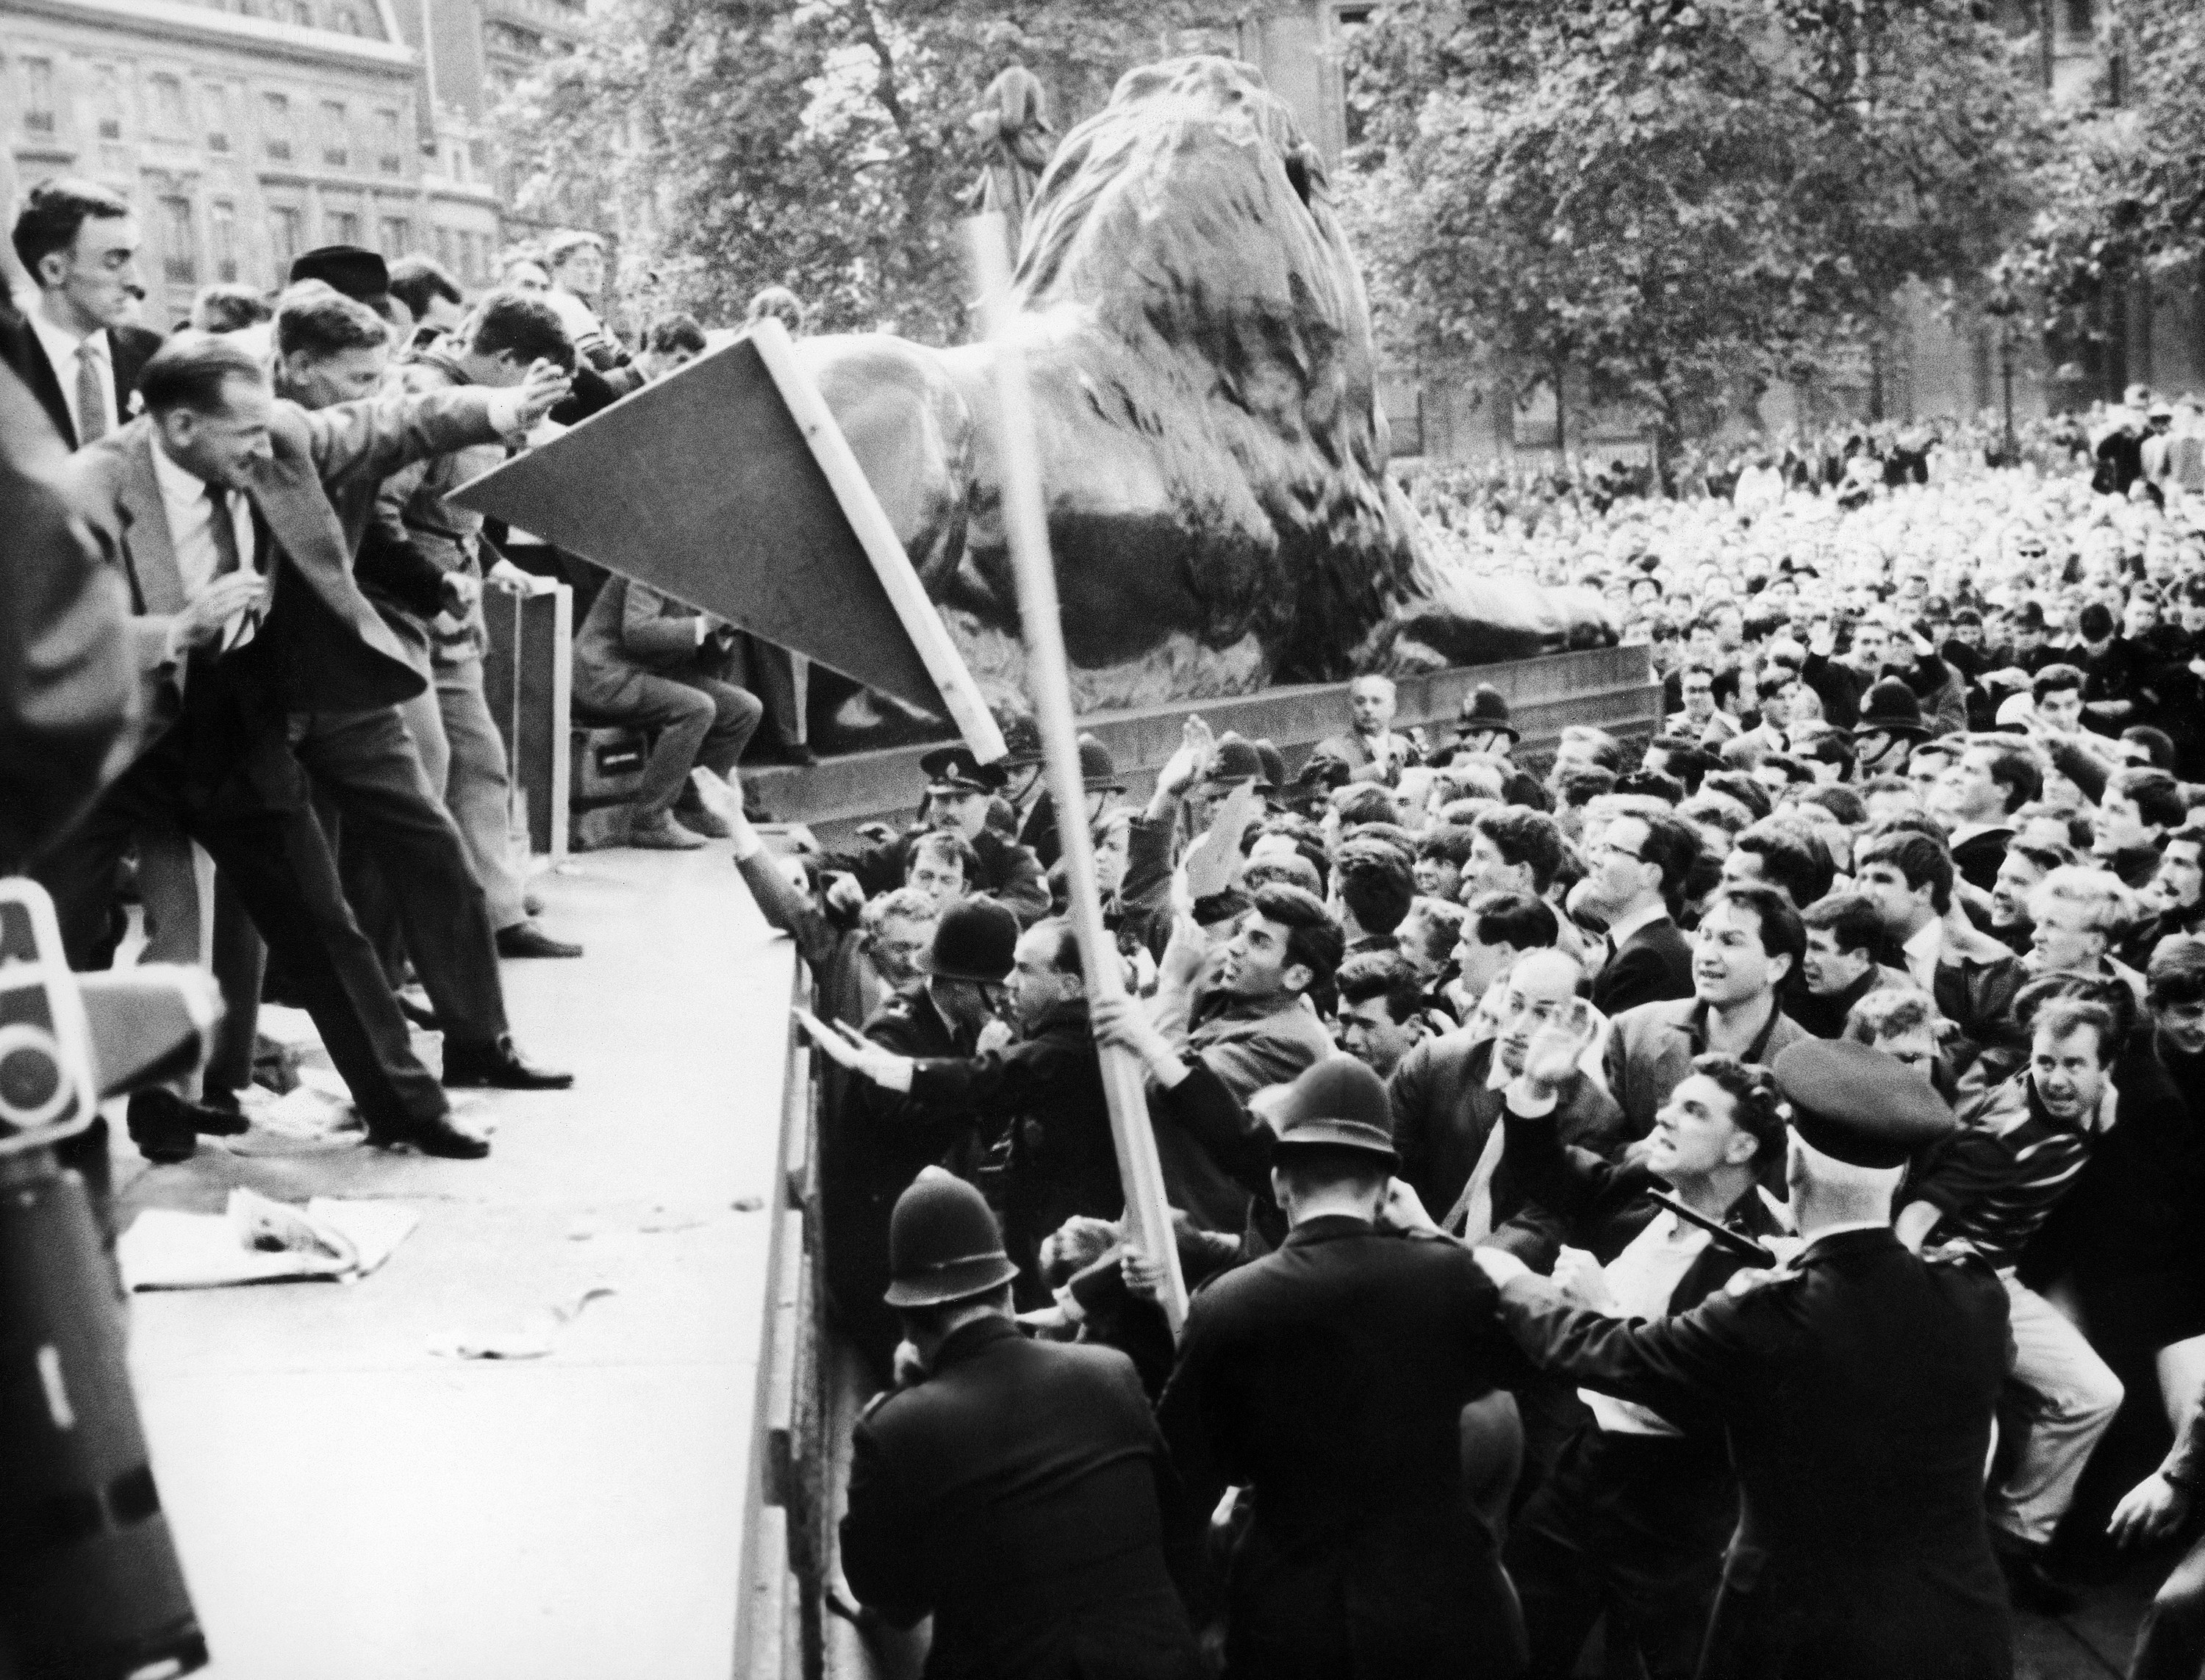 Police spectators and members of the extremist right wing British union movement leader Sir Oswald Mosley unseen clash at Trafalgar Square on July 22, 1962.